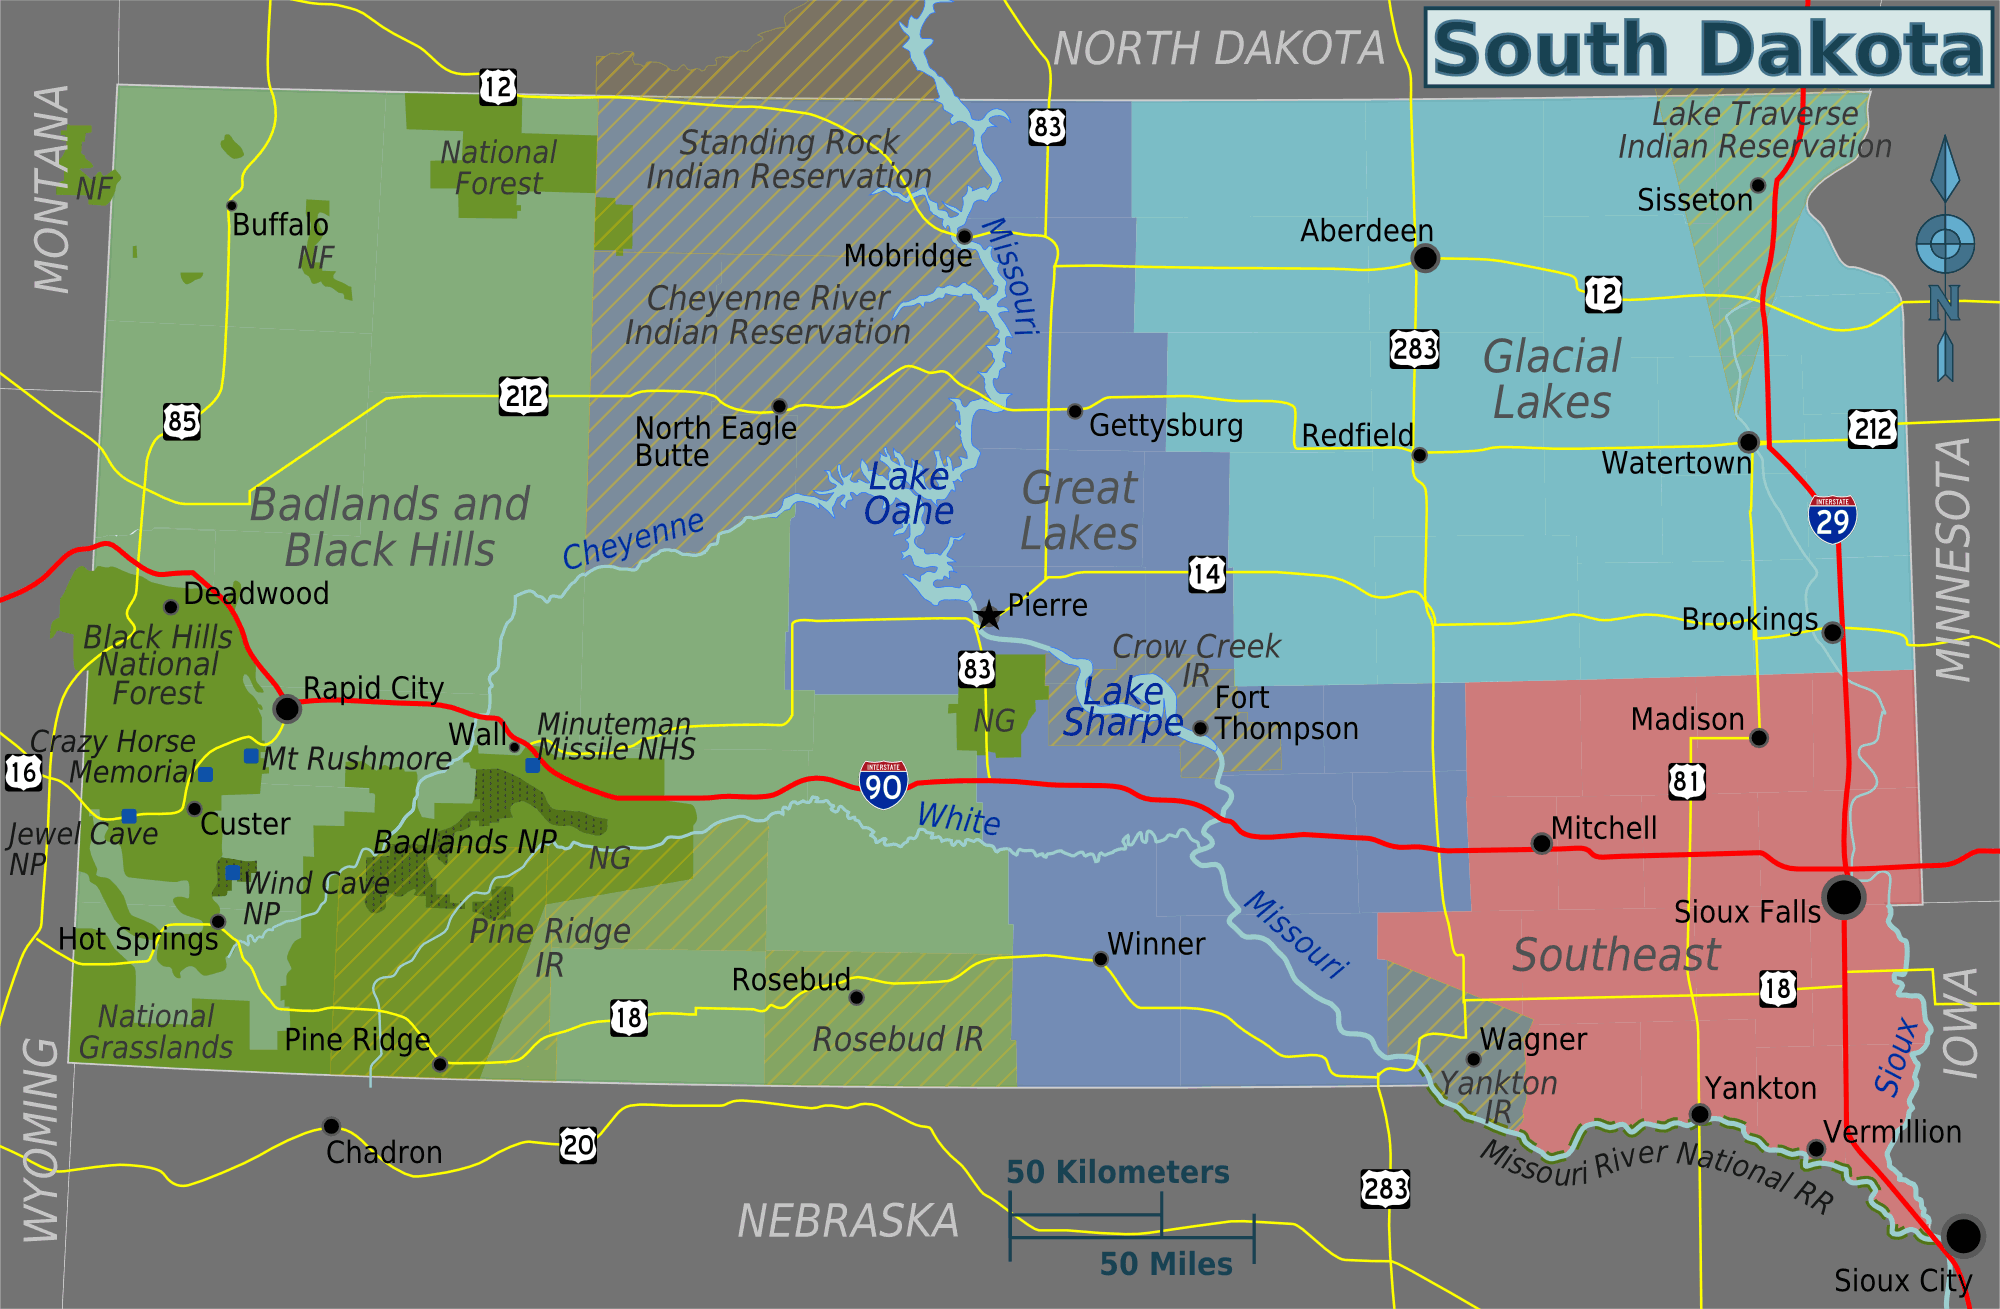 South Dakota Regions Map Mapsofnet - Political map of south dakota